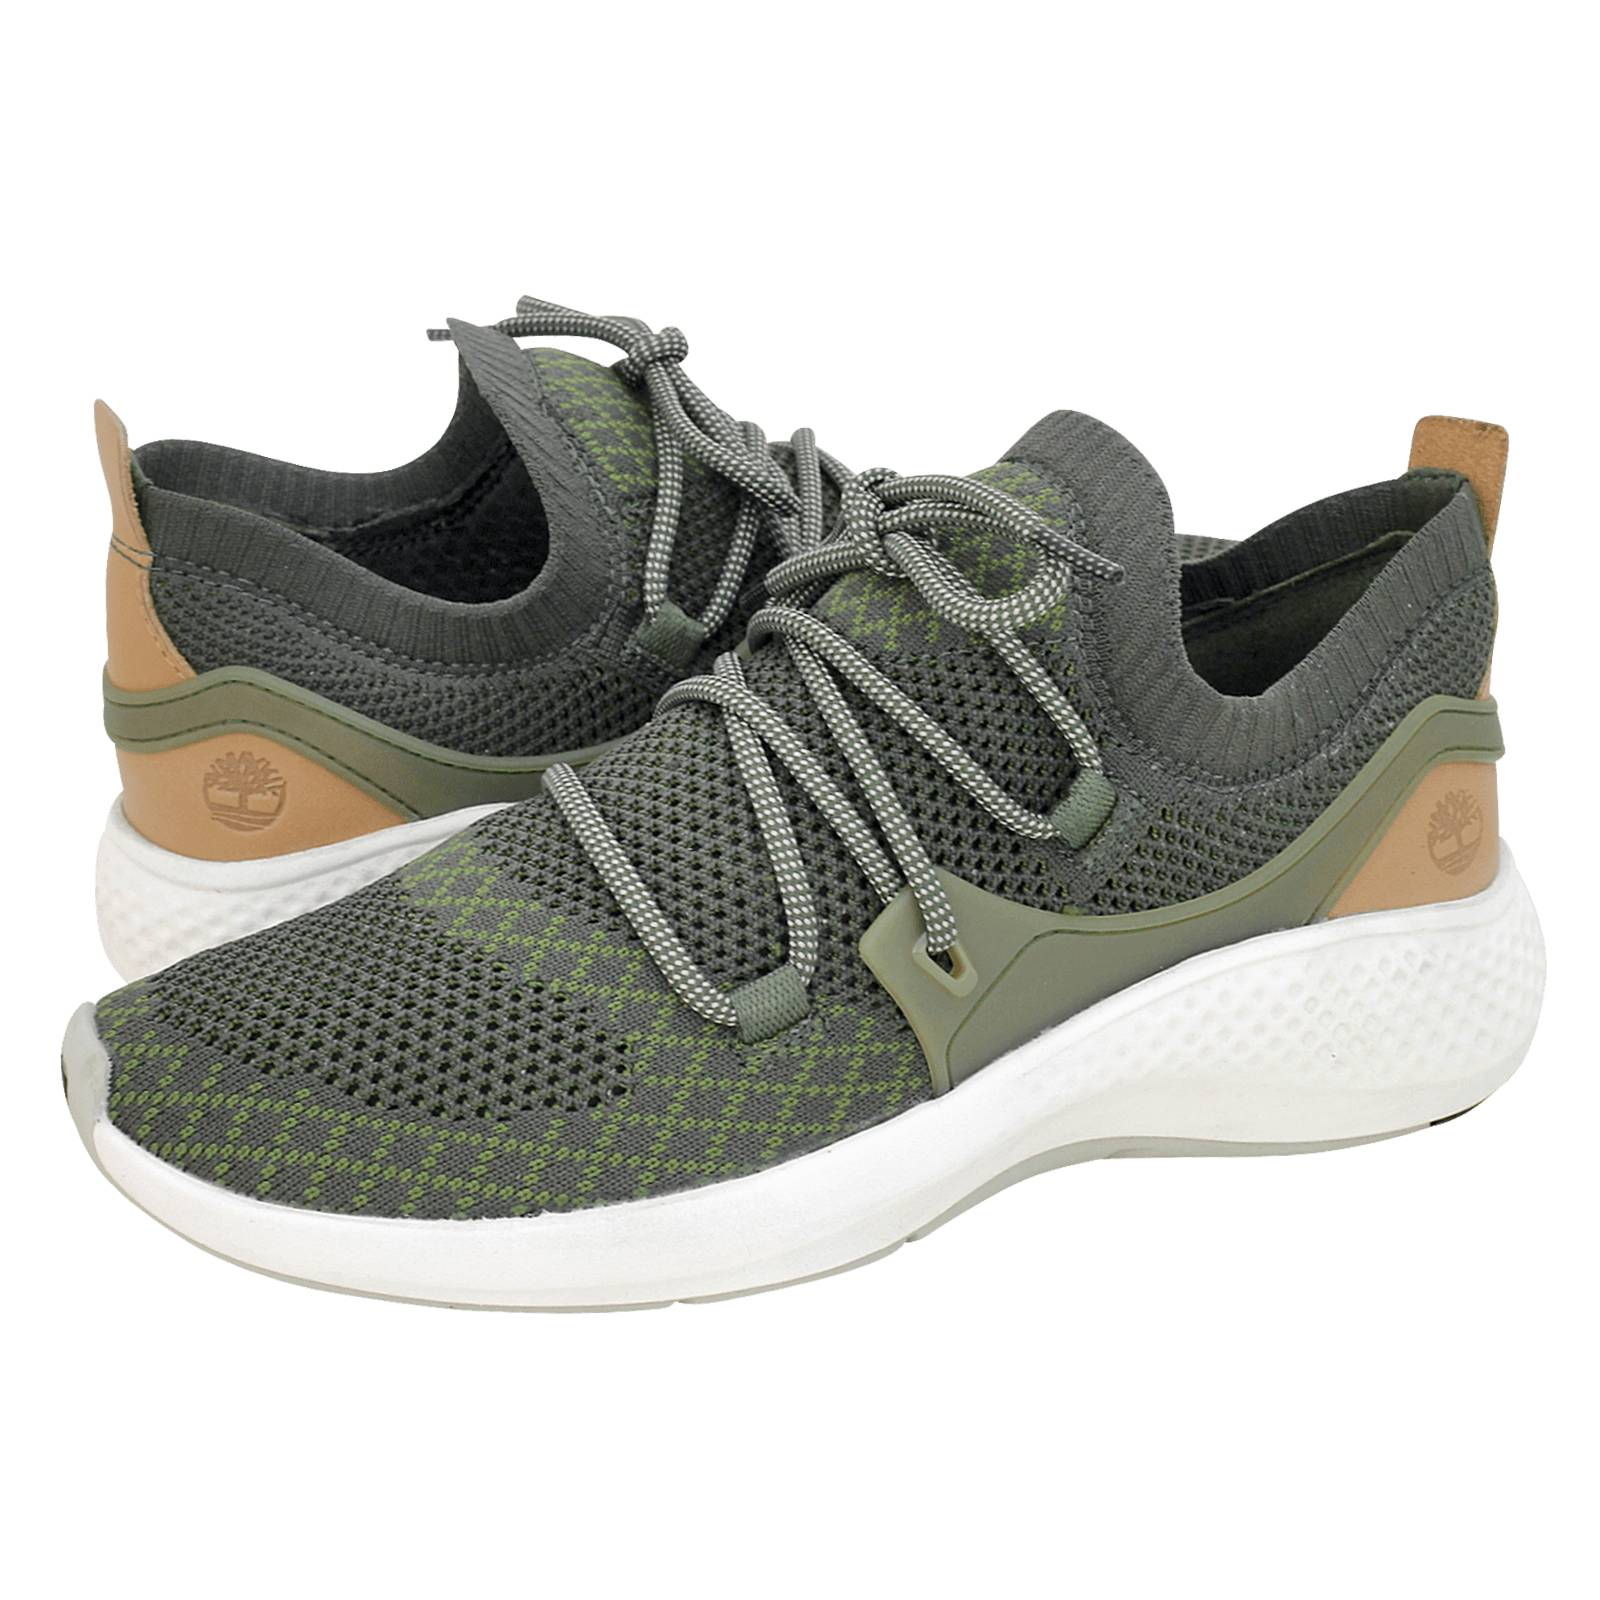 Flyroam Knit Oxford - Timberland Men s athletic shoes made of fabric ... 6996096b1589